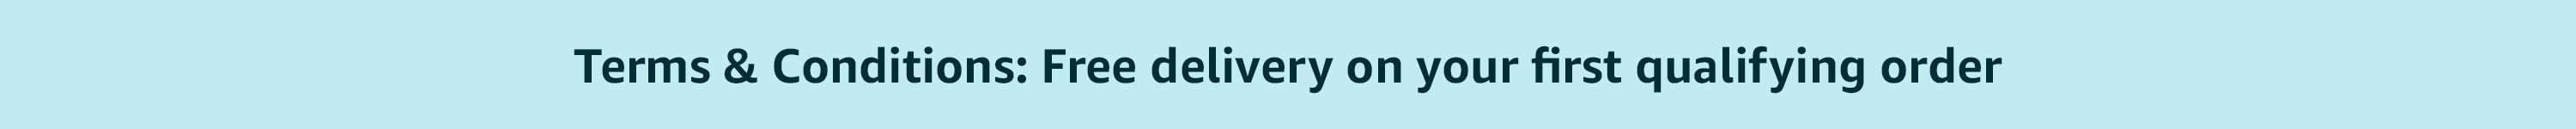 Free delivery on your first qualifying order